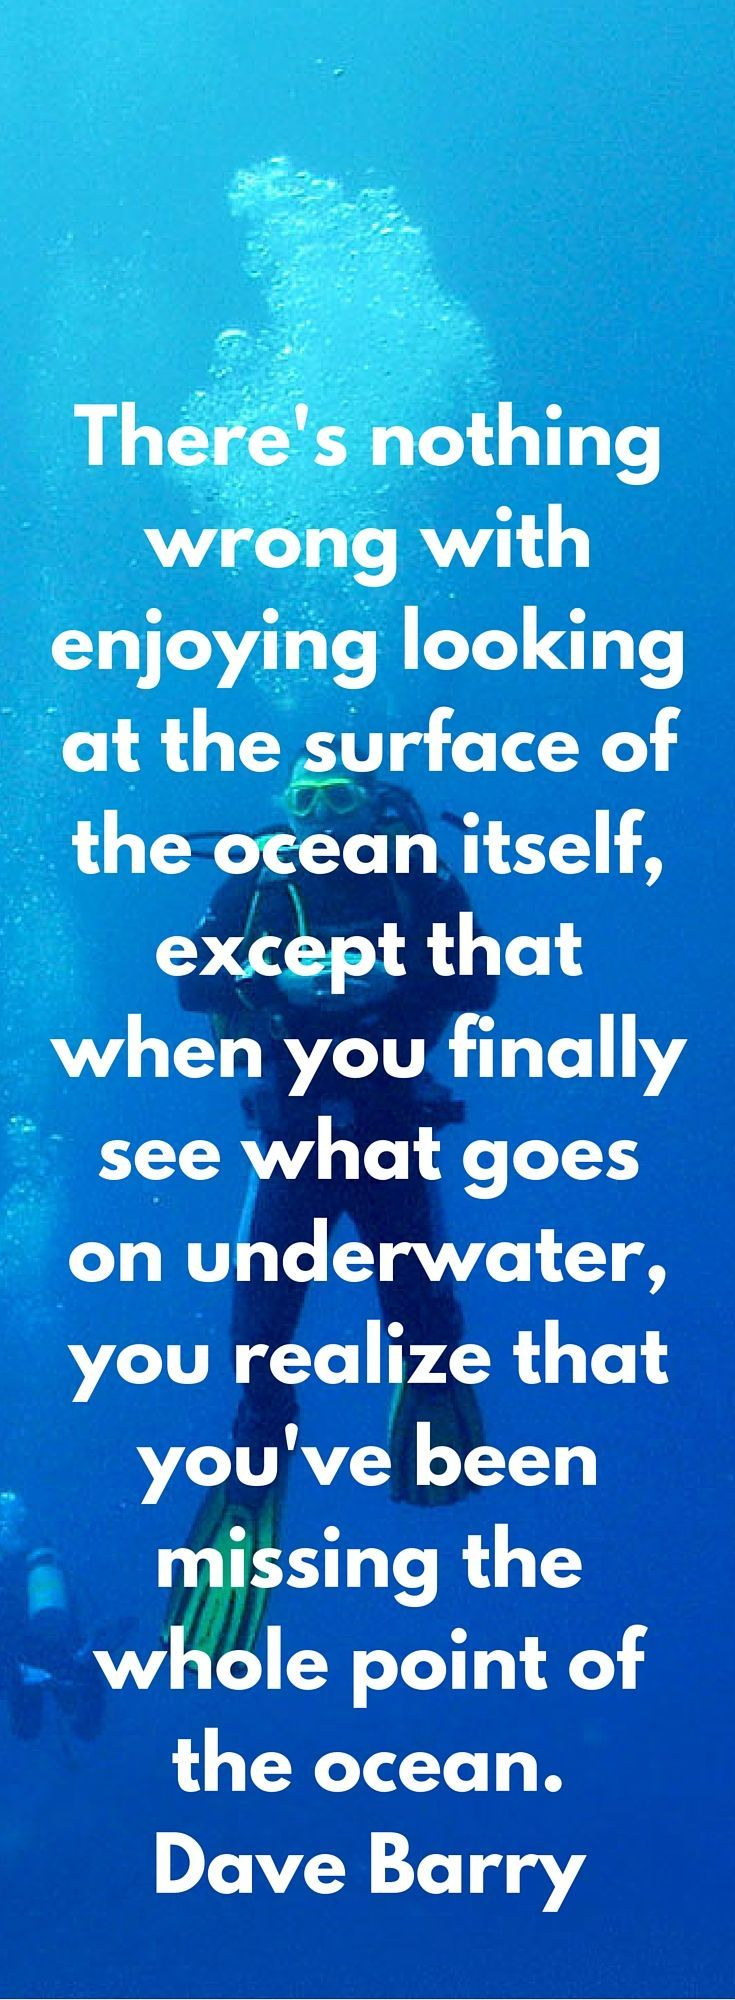 Our Favorite Ocean Quotes and Sayings | Art of Scuba Diving.